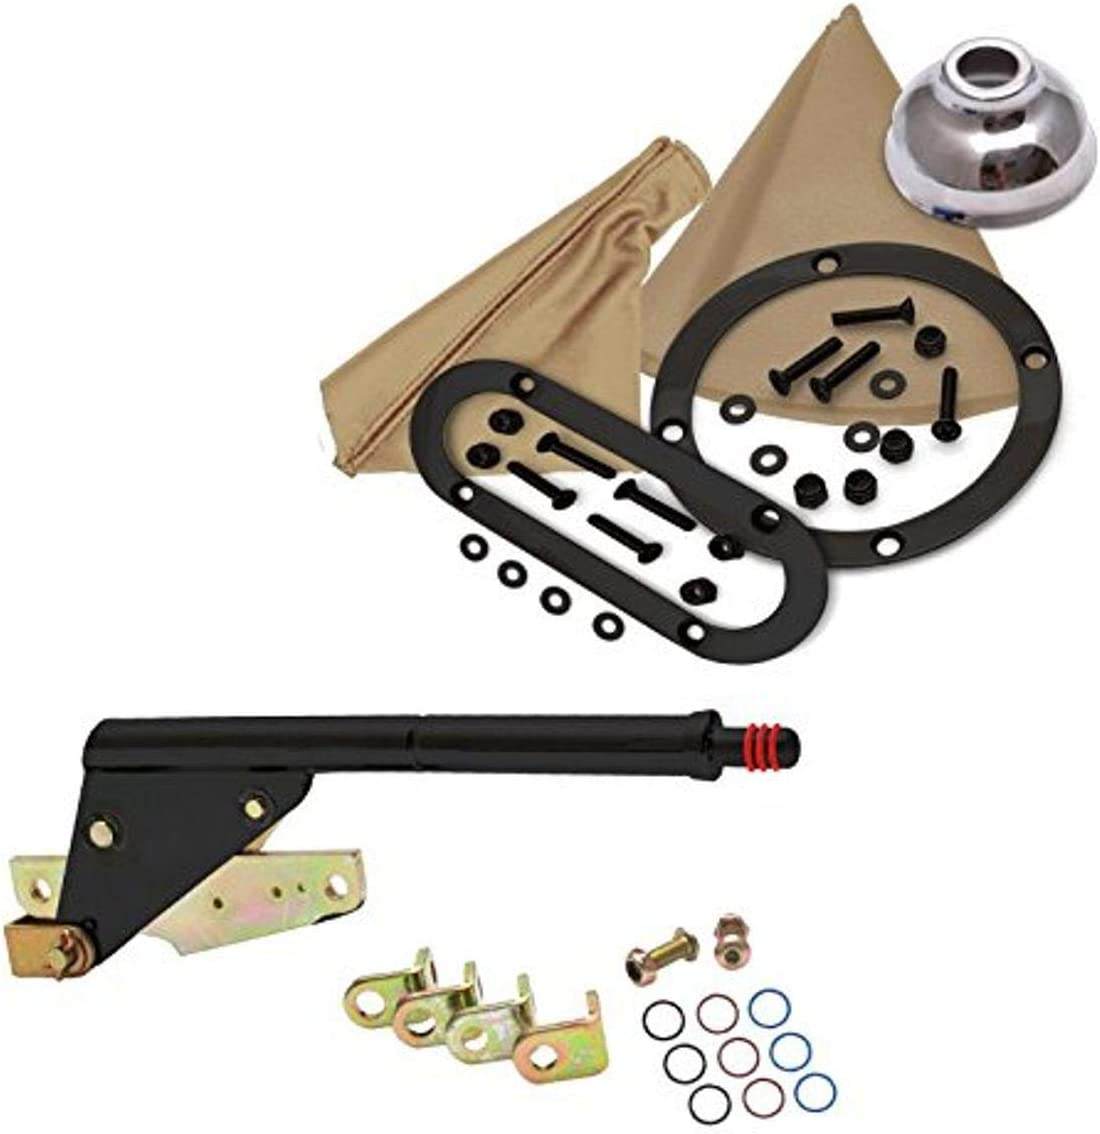 American Shifter Regular discount 528727 Kit 904 23 Swan Brake T E Cable security